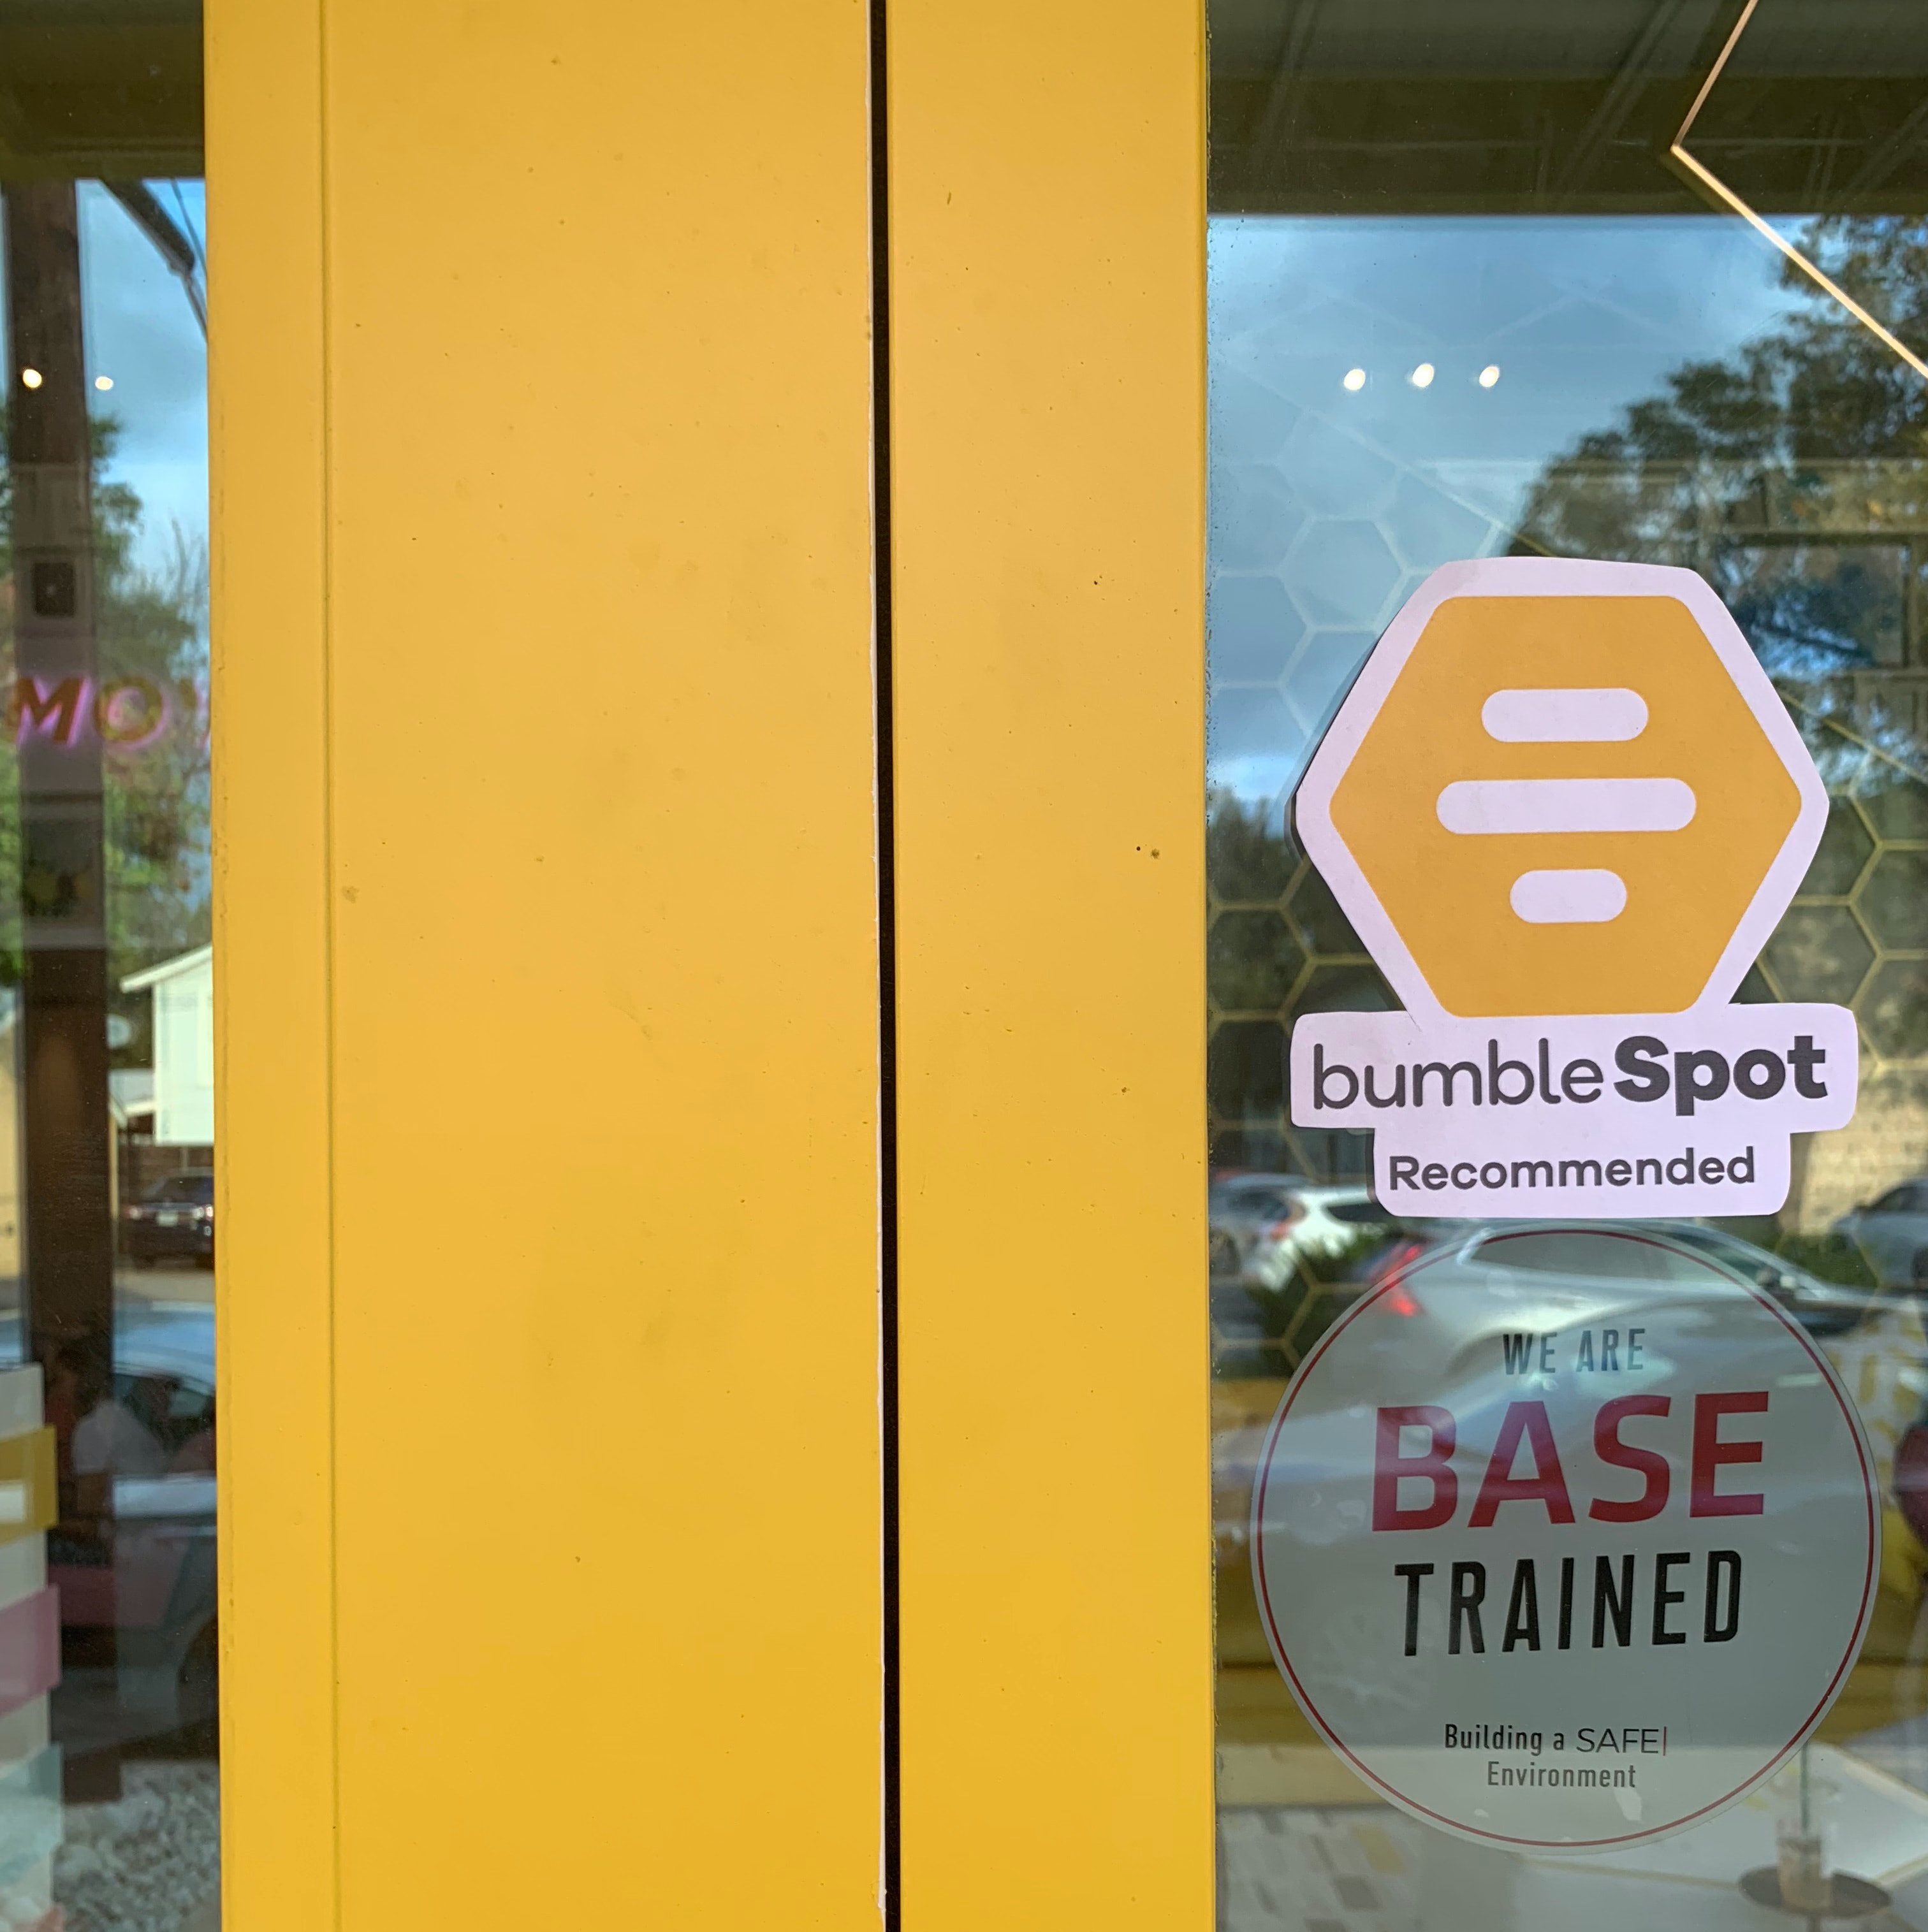 Bumble Launches BumbleSpot, Verified Locations Where You Can